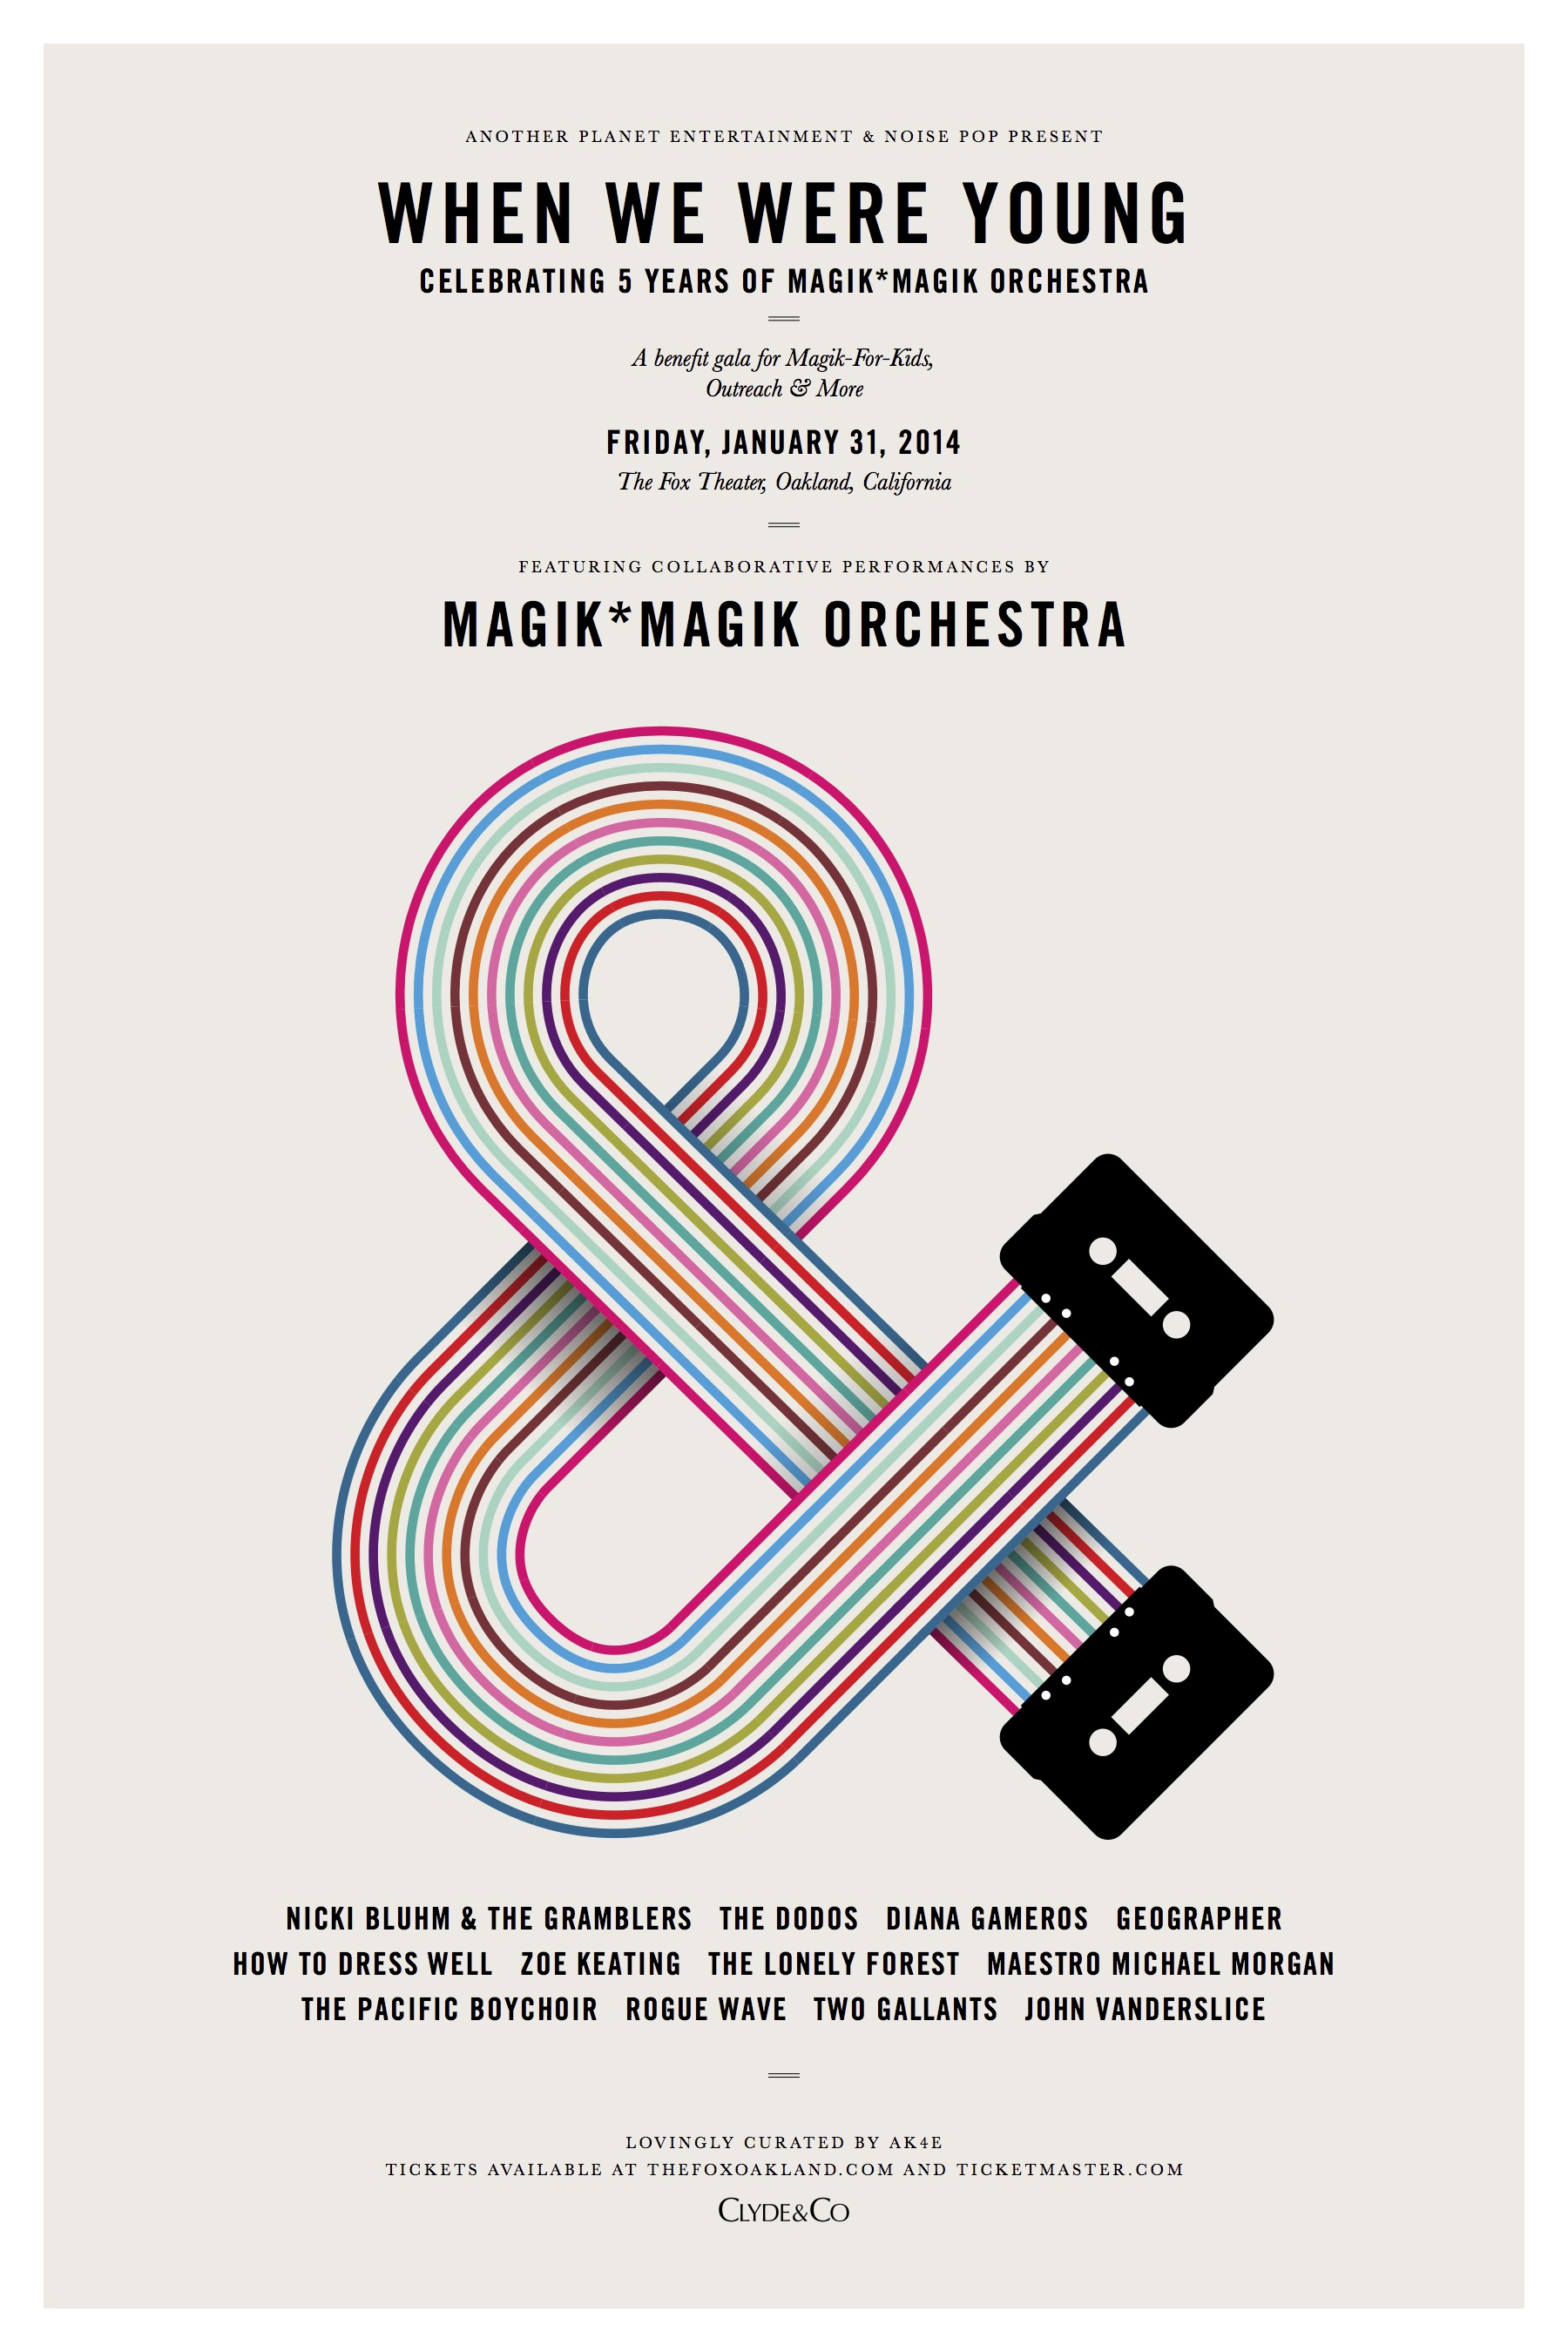 Magik*Magik Celebrates our 5th Birthday with a Gala Concert featuring The Dodos, John Vanderslice, Nicki Bluhm & the Gramblers, How to Dress Well, Geographer, Rogue Wave, Two Gallants, The Lonely Forest, Diana Gameros and Zoe Keating.